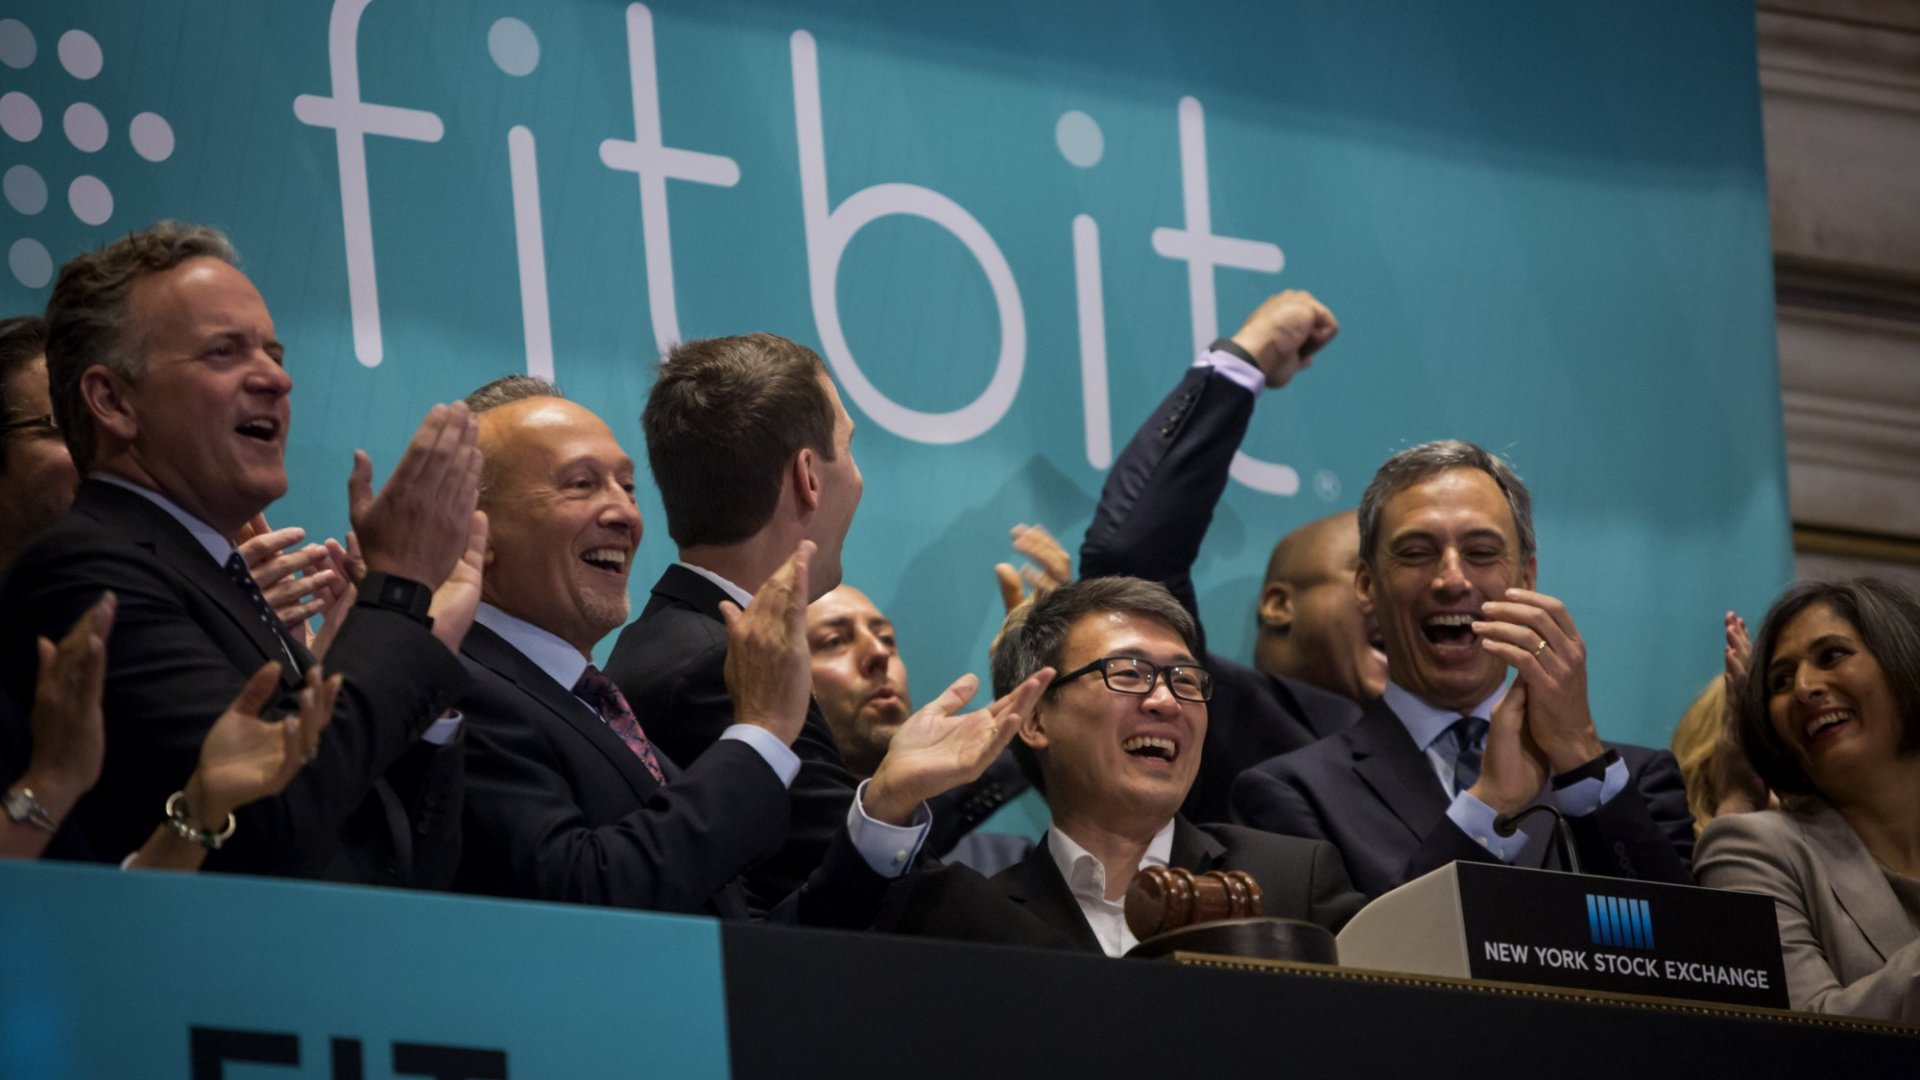 Fitbit on Brink of Buying Struggling Smartwatch Company